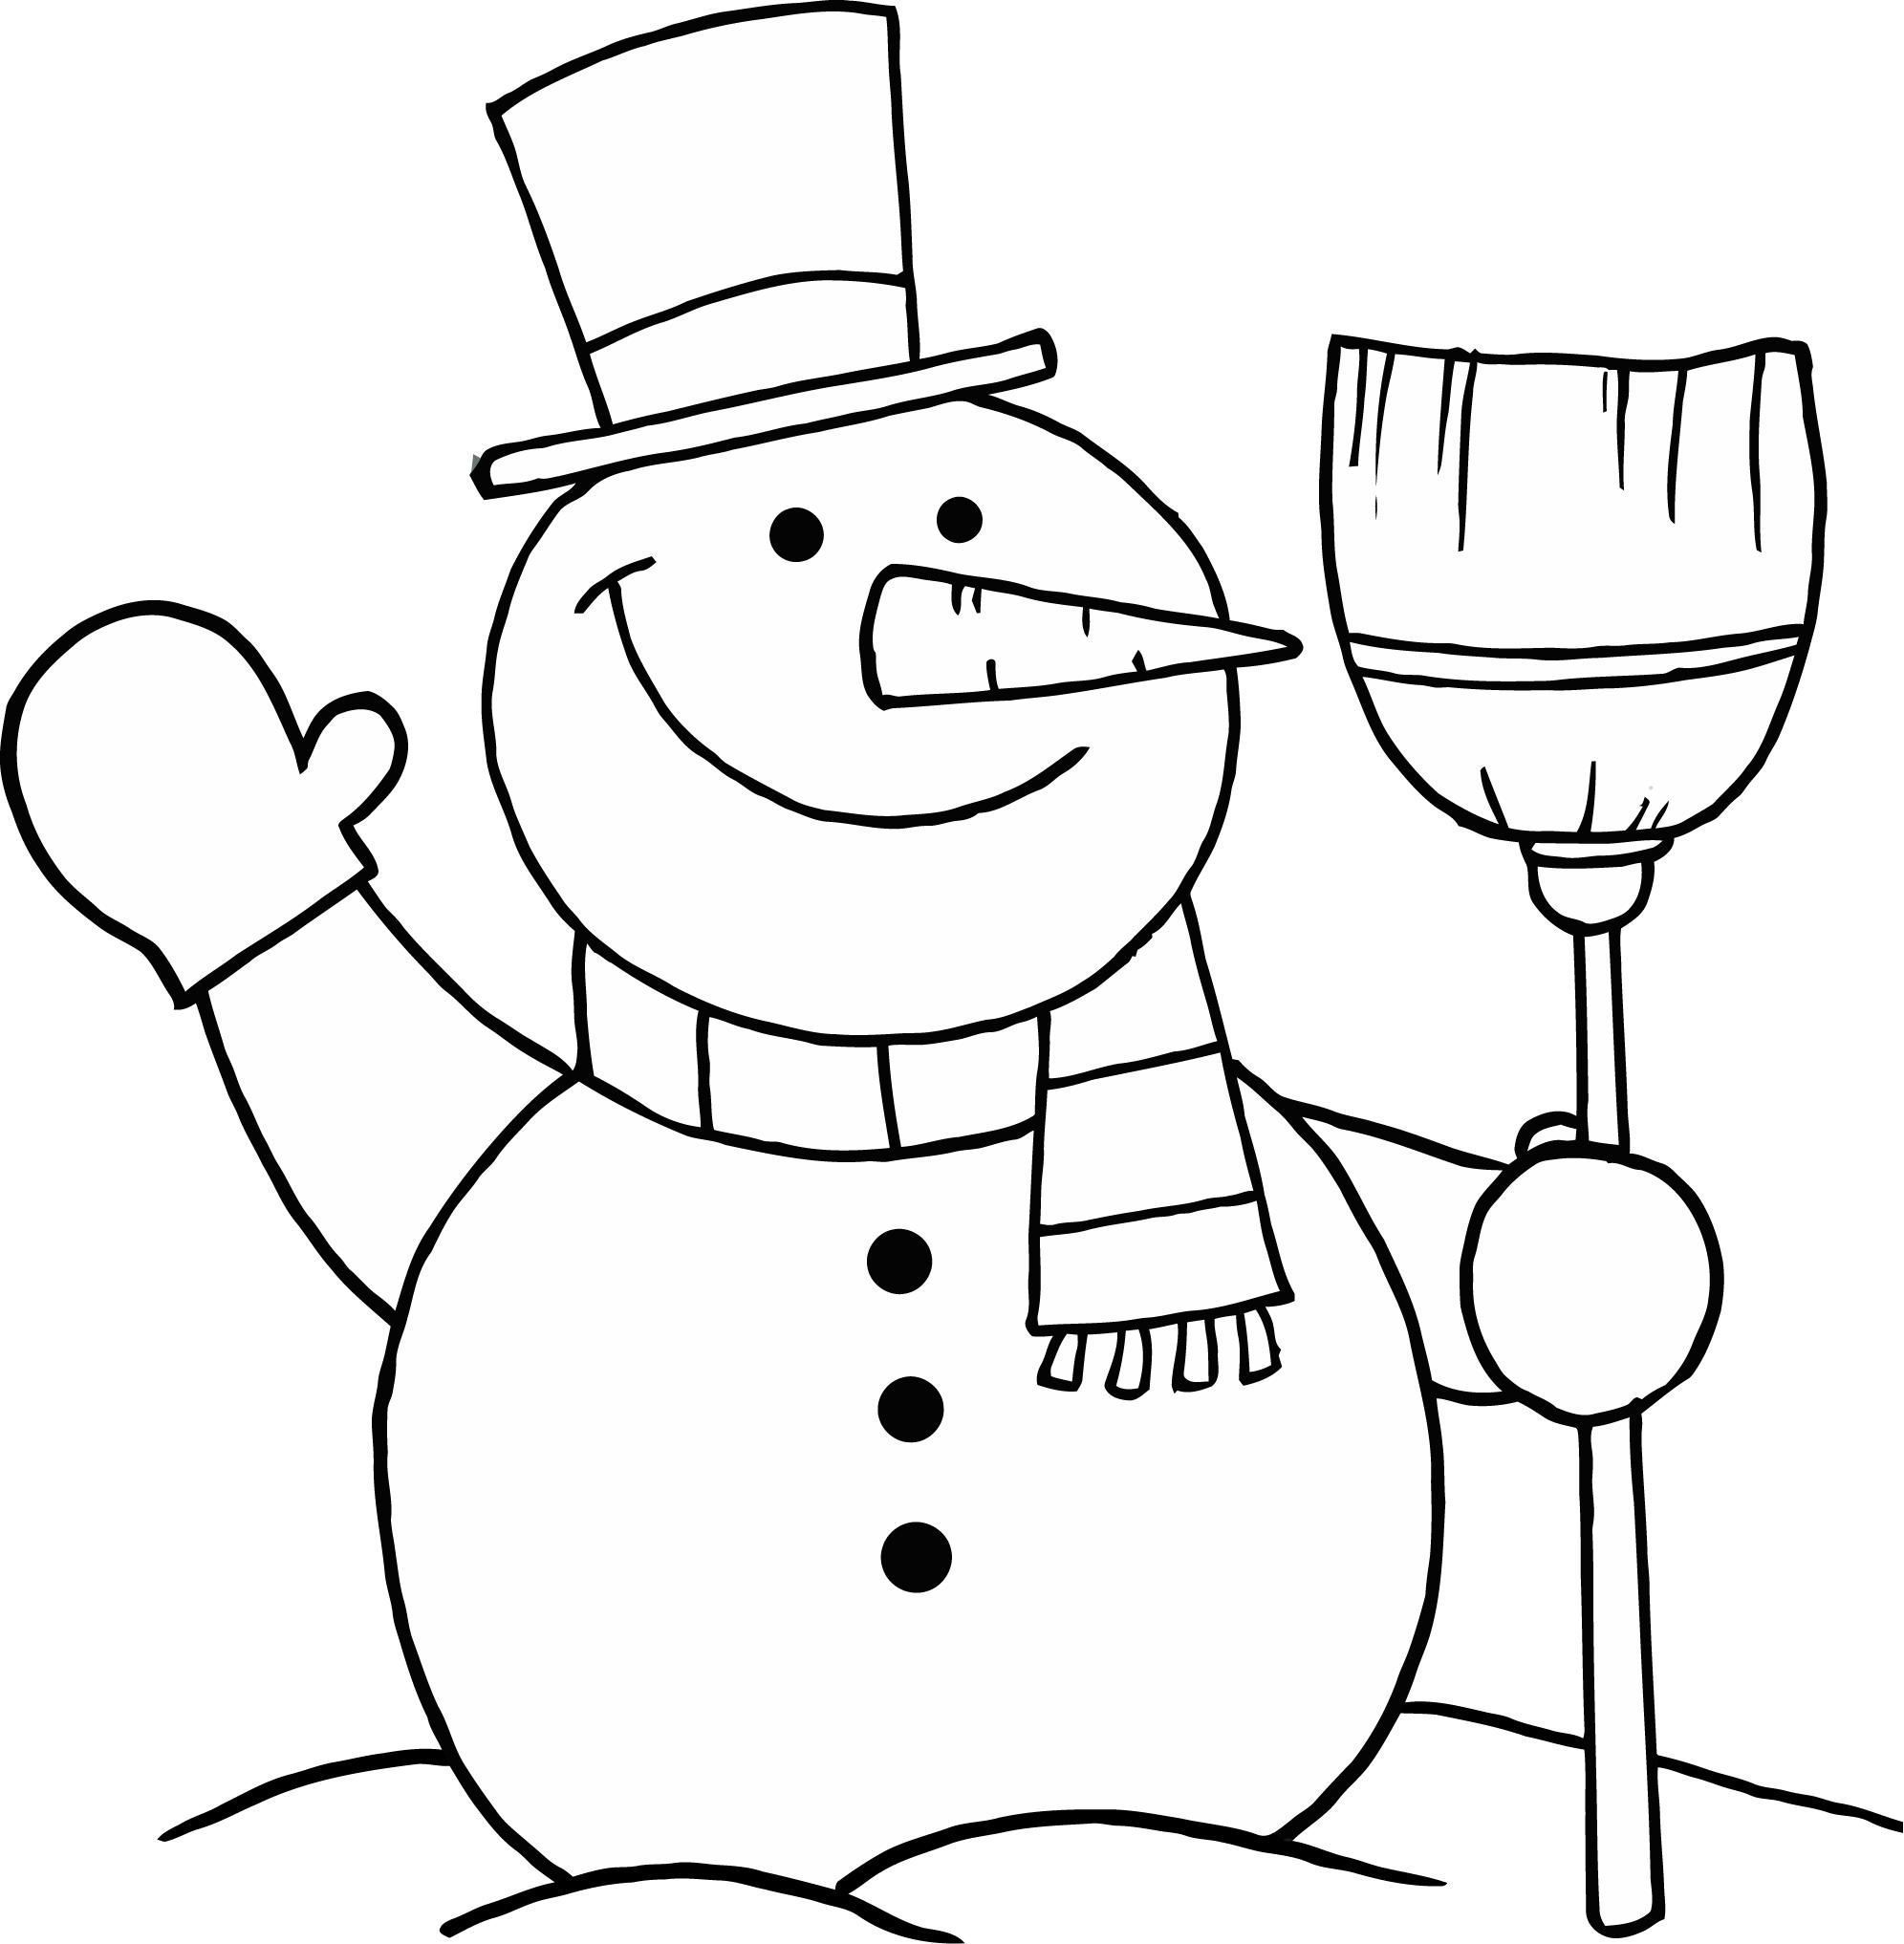 snowman for coloring simple snowman coloring pages at getcoloringscom free coloring snowman for